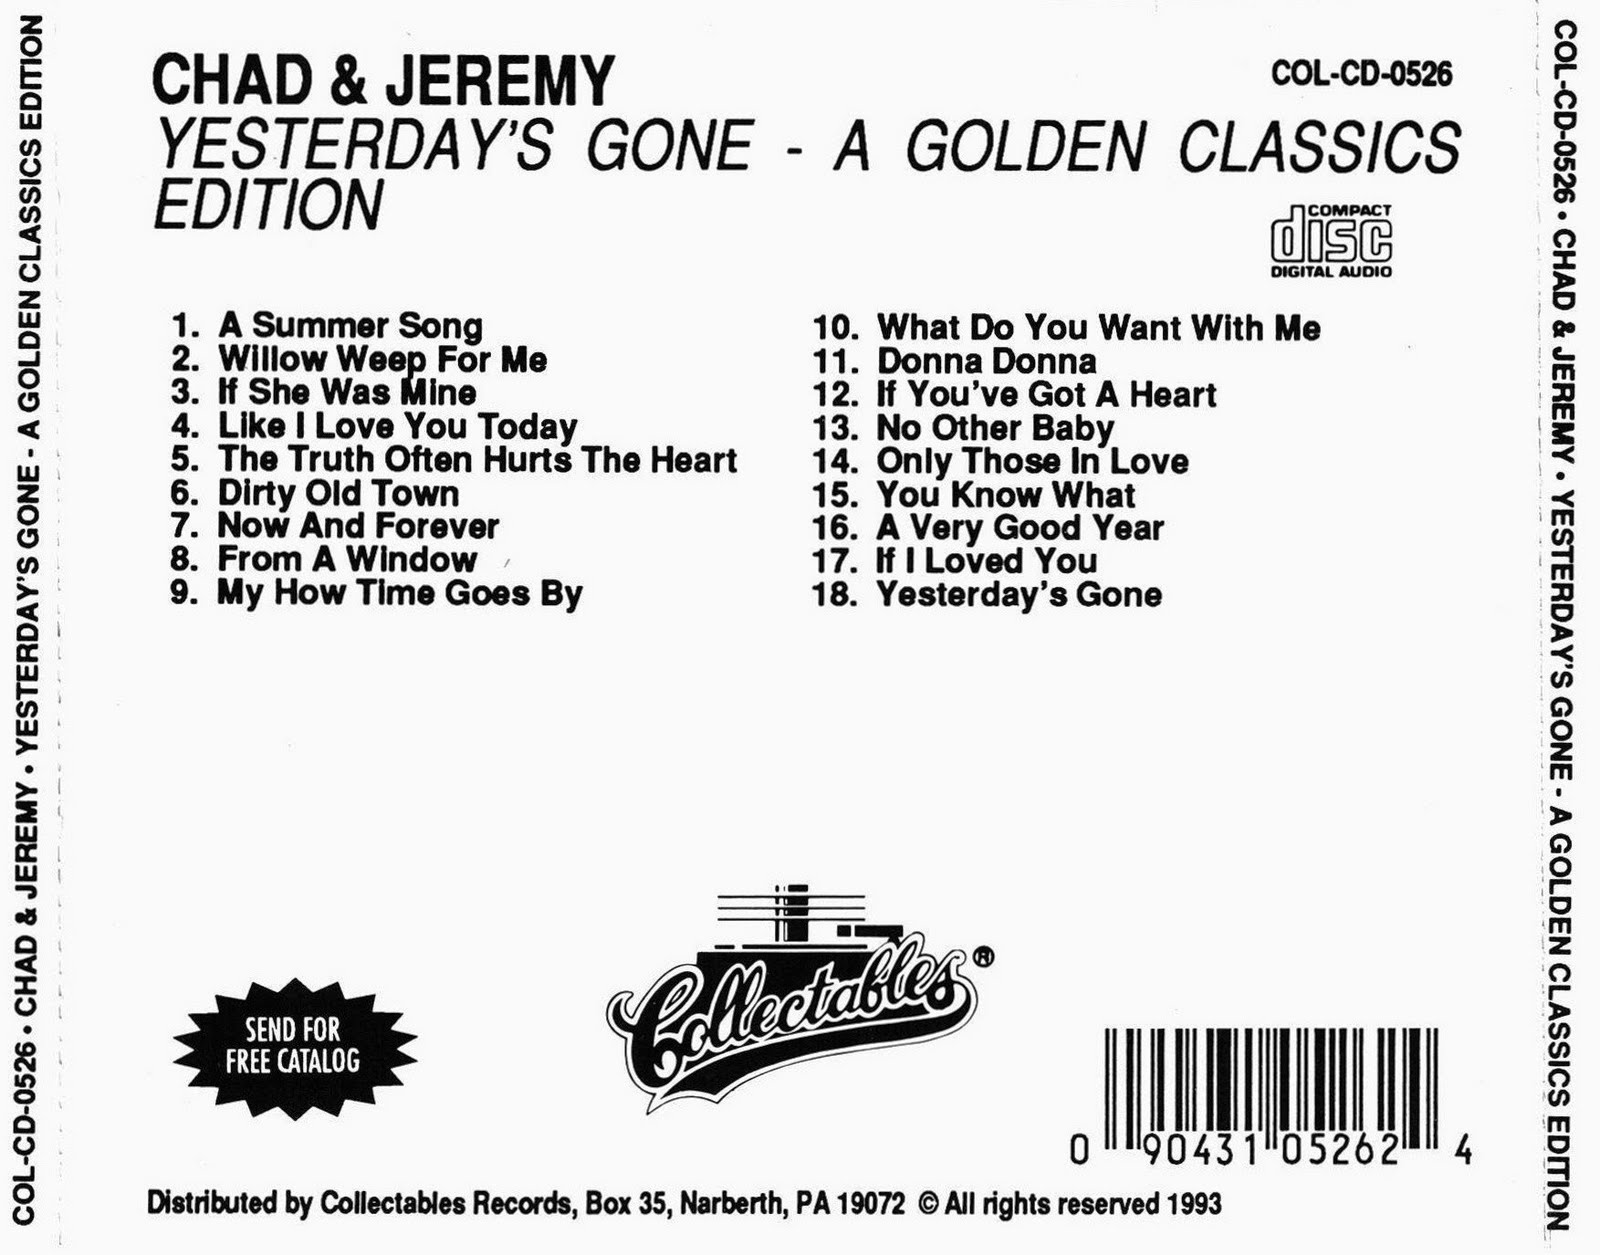 http://4.bp.blogspot.com/-gJIso7SH8dM/TnKFQlRw8kI/AAAAAAAAB_E/9agQv0Ay9JA/s1600/chad_jeremy_yesterdays_gone_a_golden_classics_edition_1993_retail_cd-back.jpg